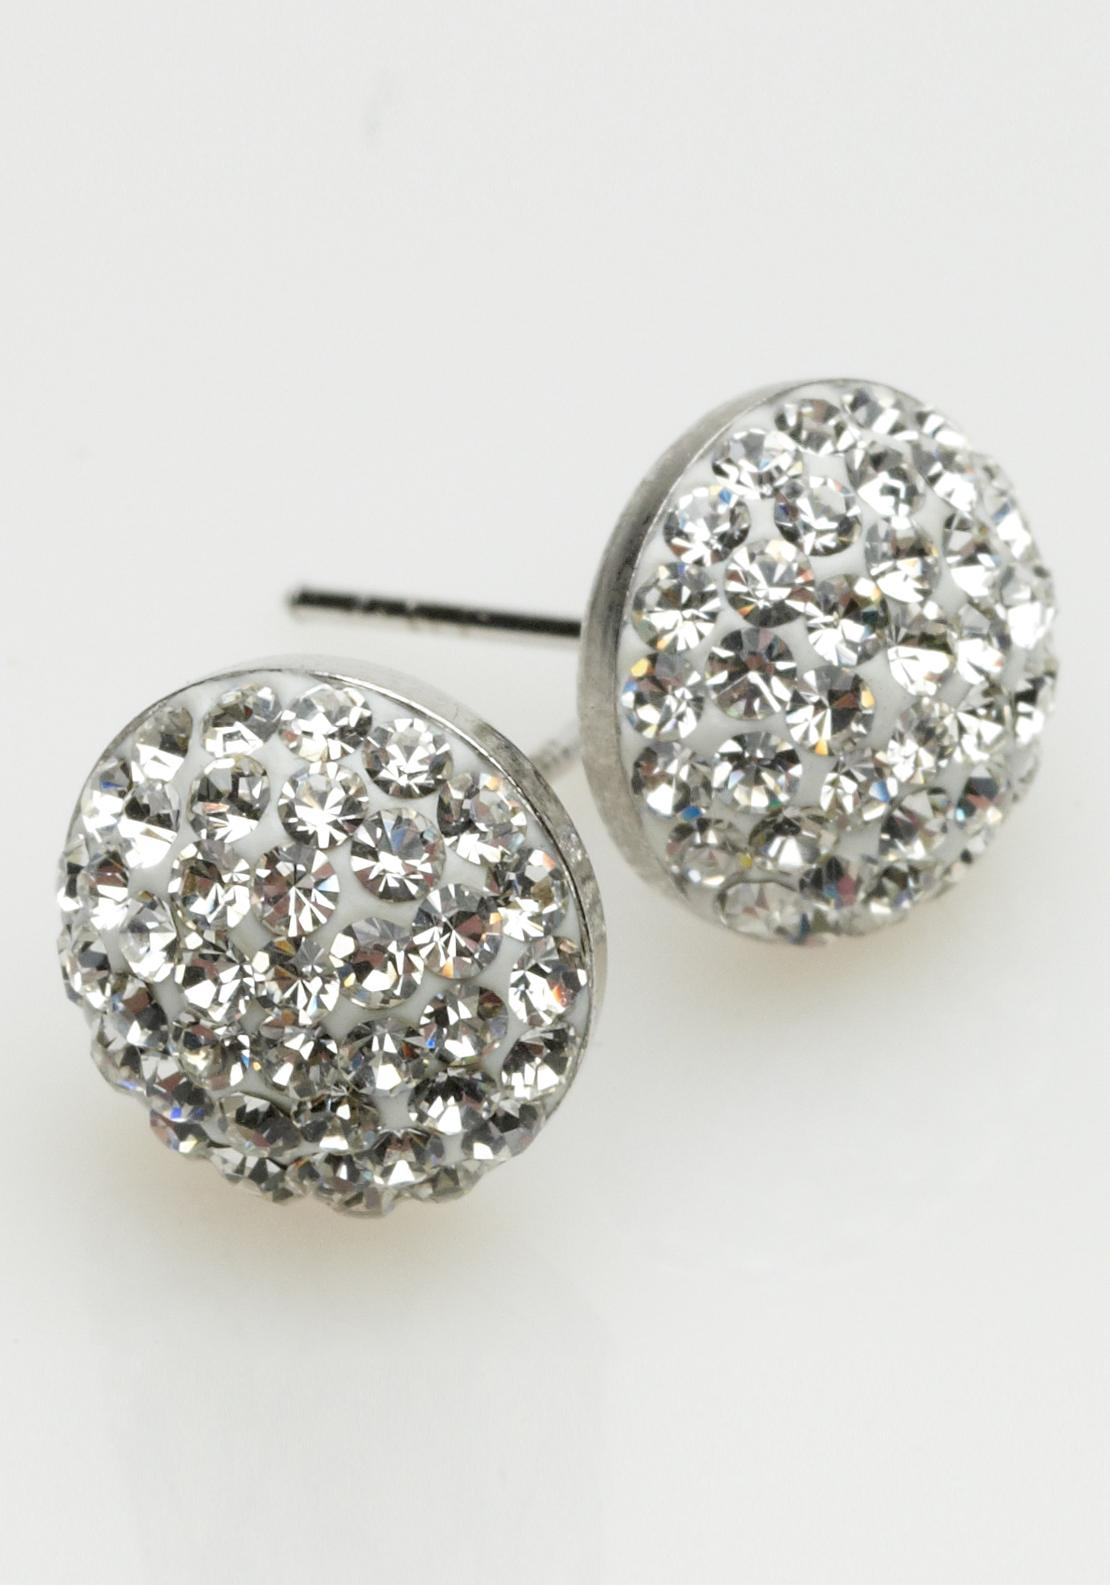 Killarney Crystal Venus Stud Earrings